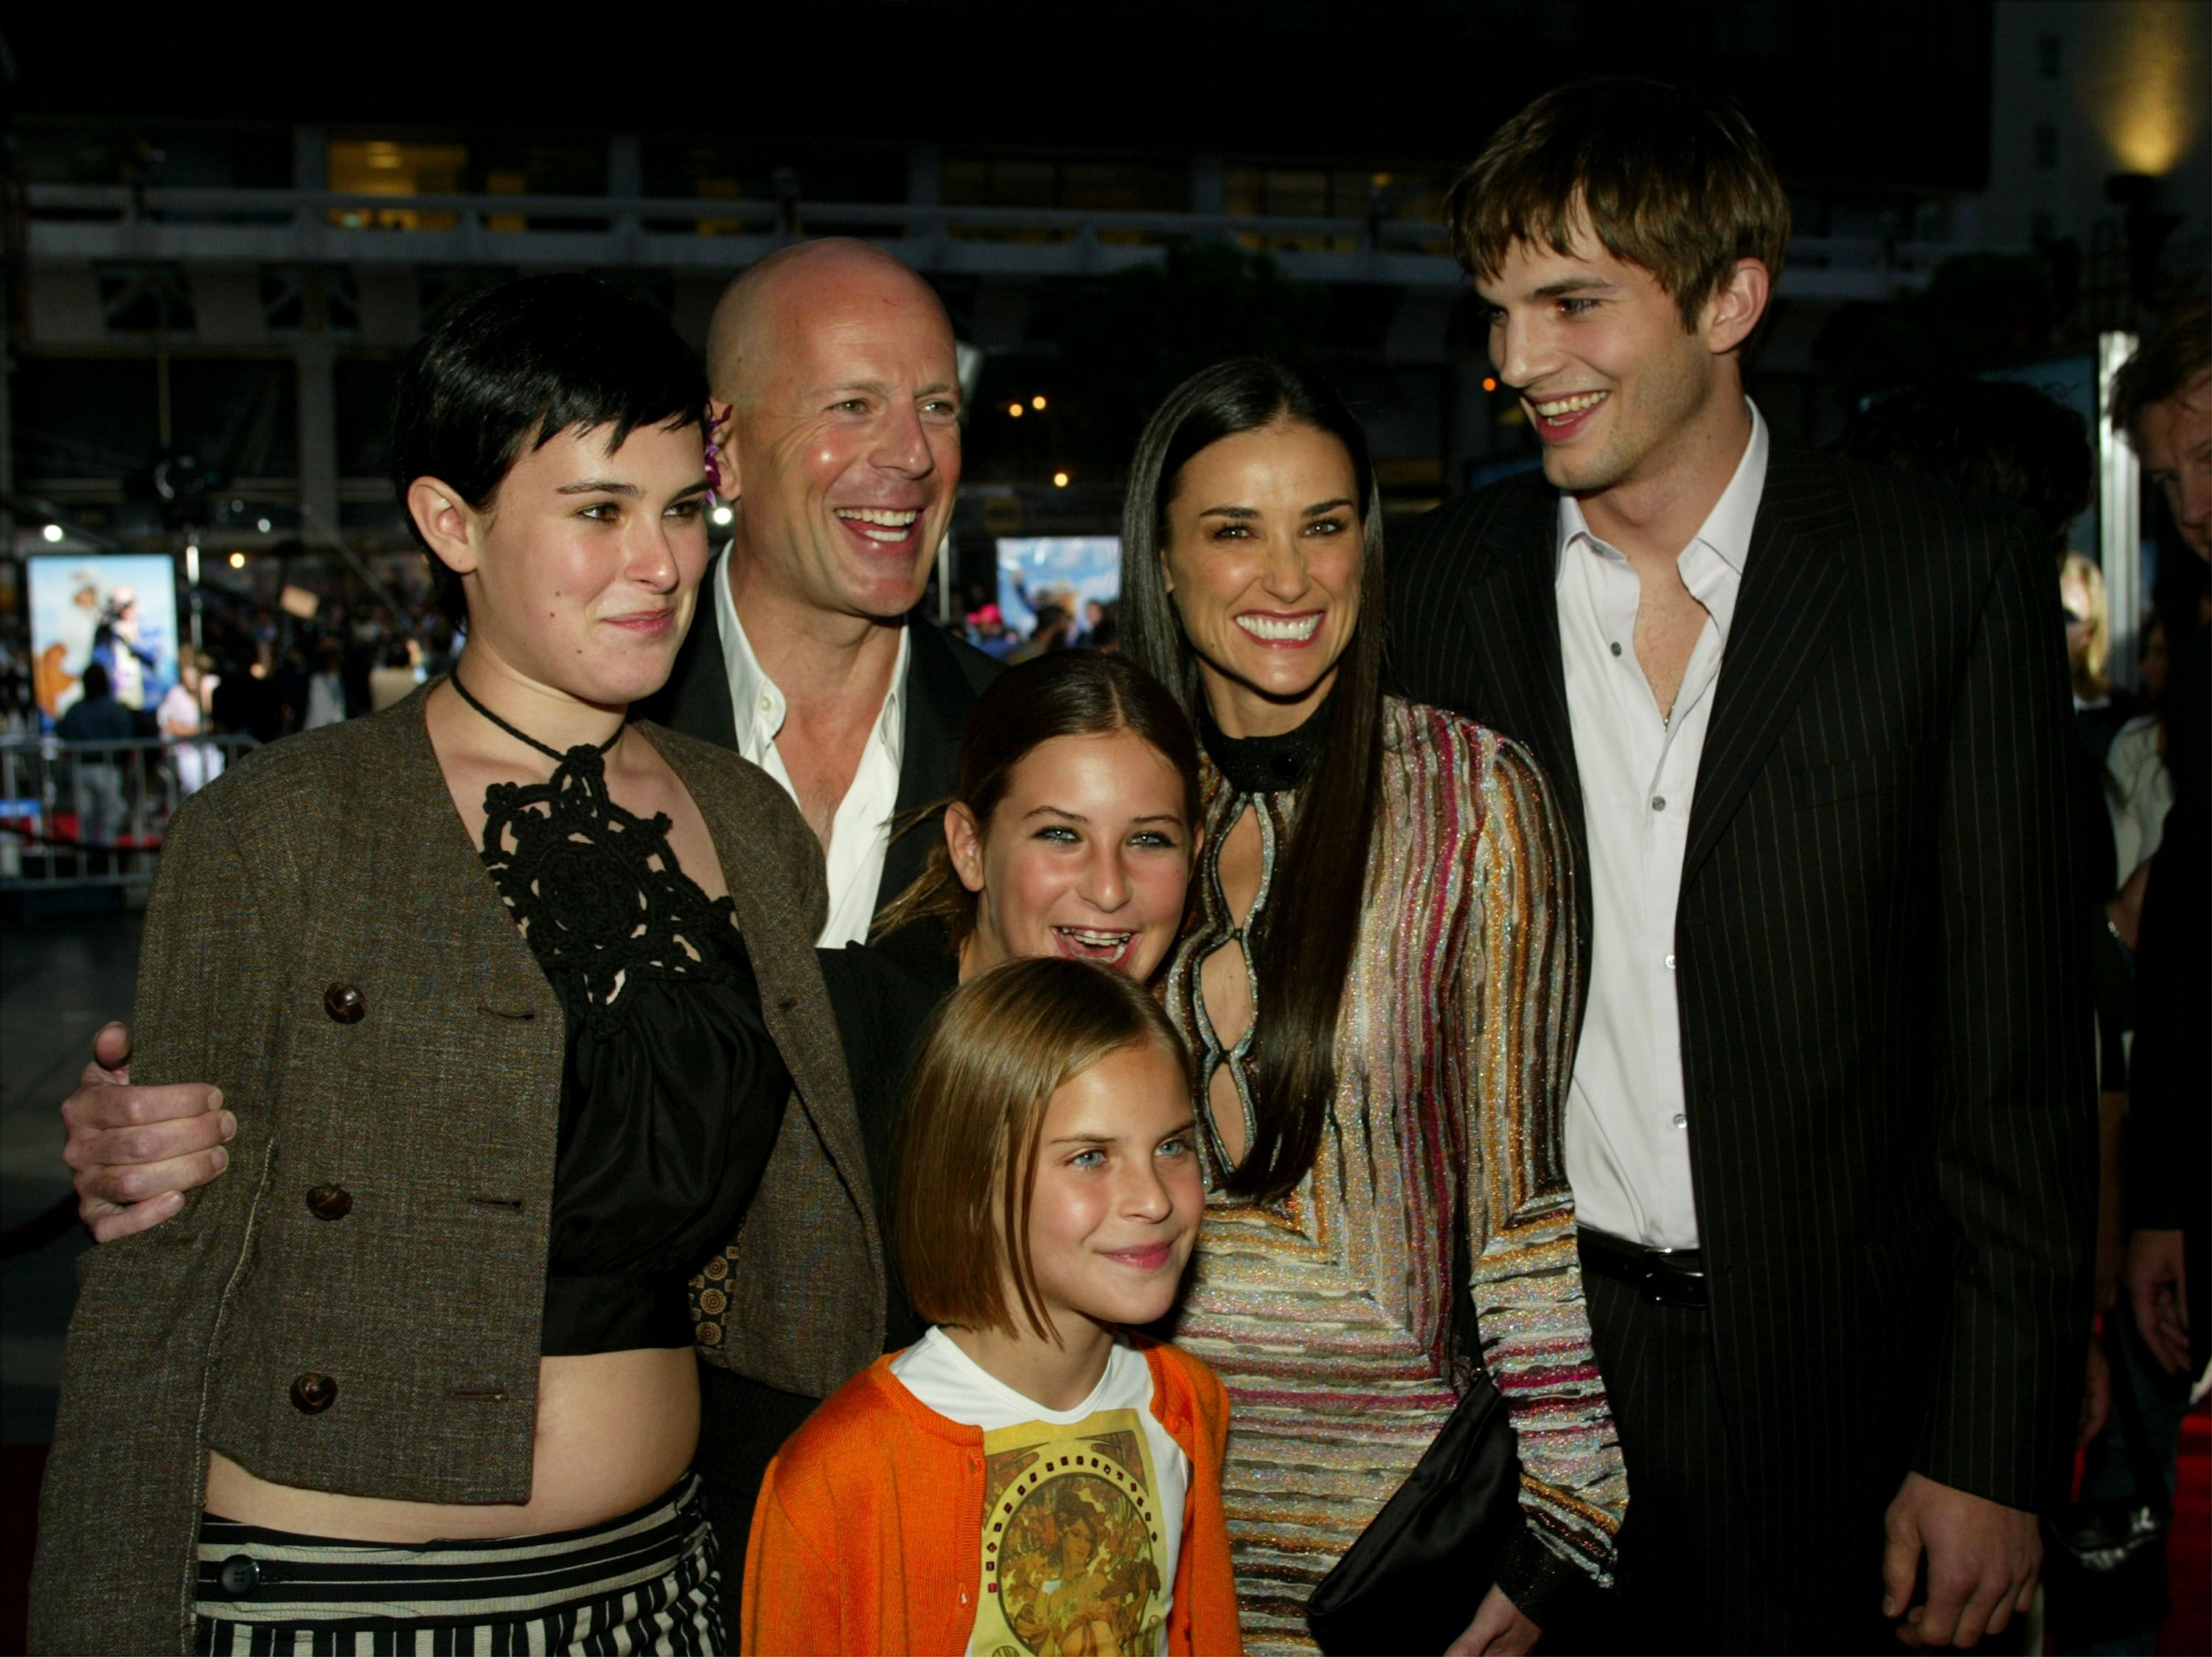 Bruce Willis, Ashton Kutcher, and Demi Moore with daughters at the Red Carpet (premiere) of Charlie's Angels 2 - Full Throttle."